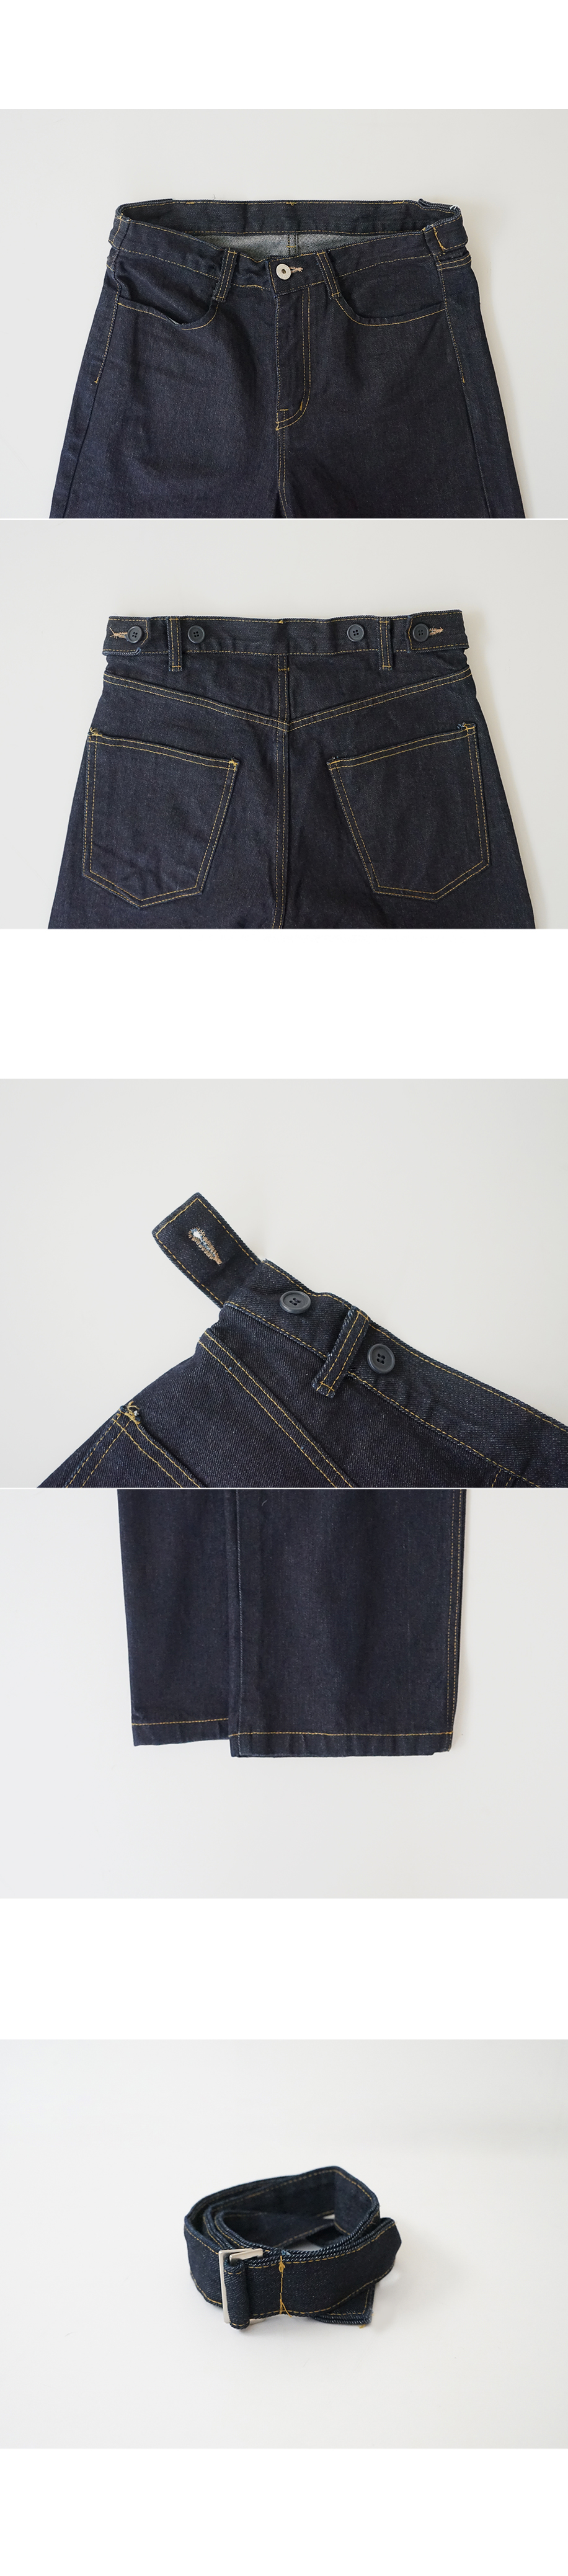 belt point salvage denim pant